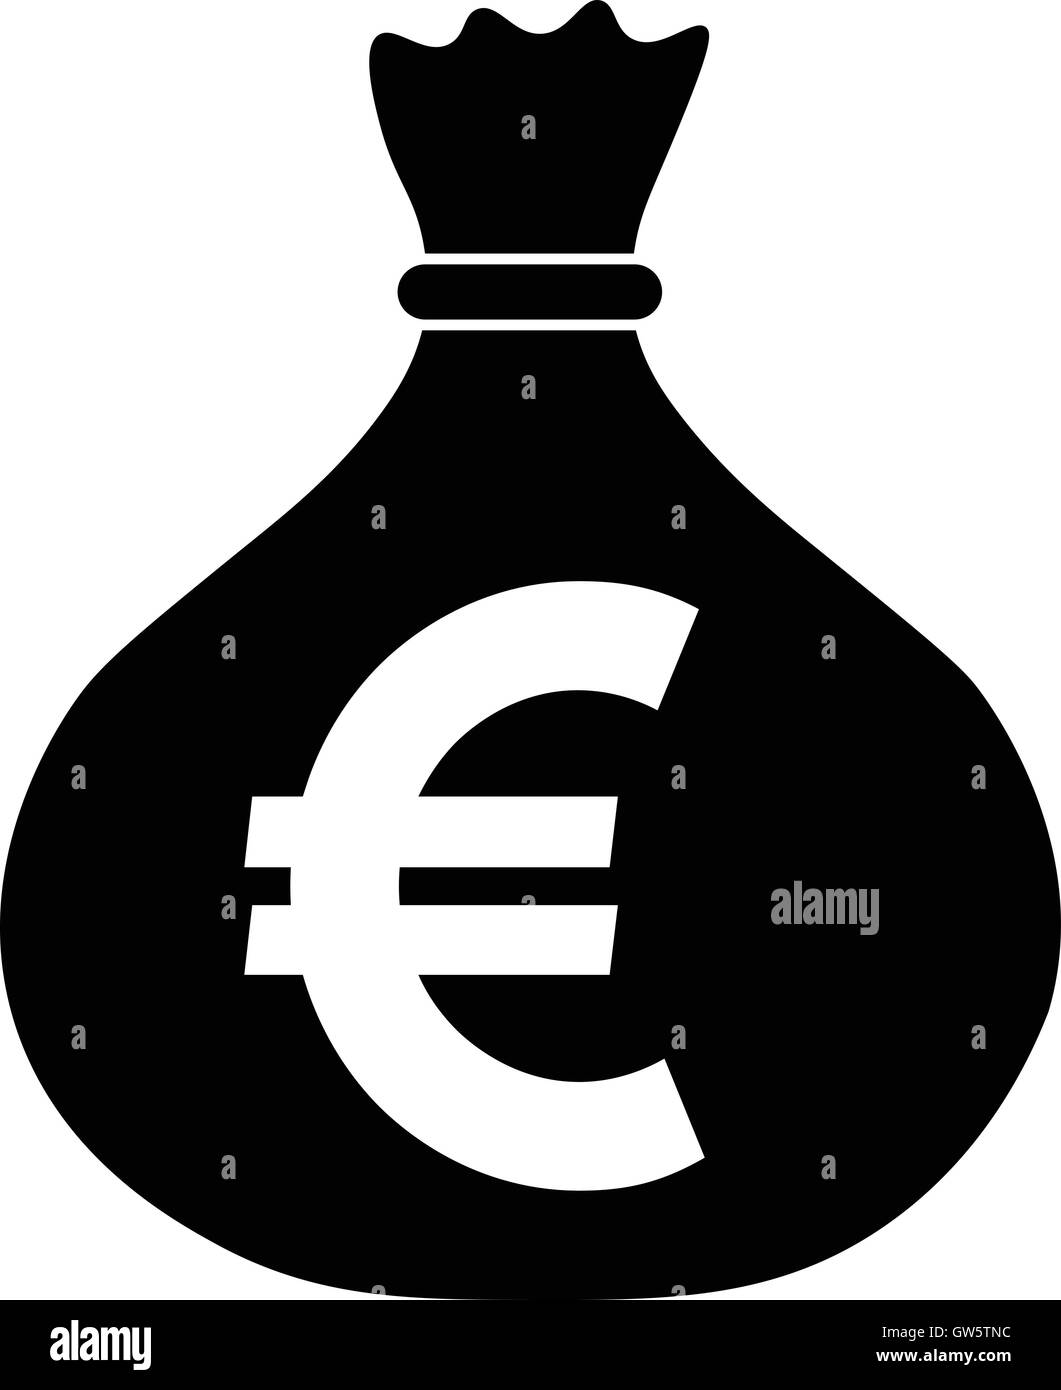 Money bag icon with euro symbol eur currency symbol vector stock money bag icon with euro symbol eur currency symbol vector illustration biocorpaavc Images